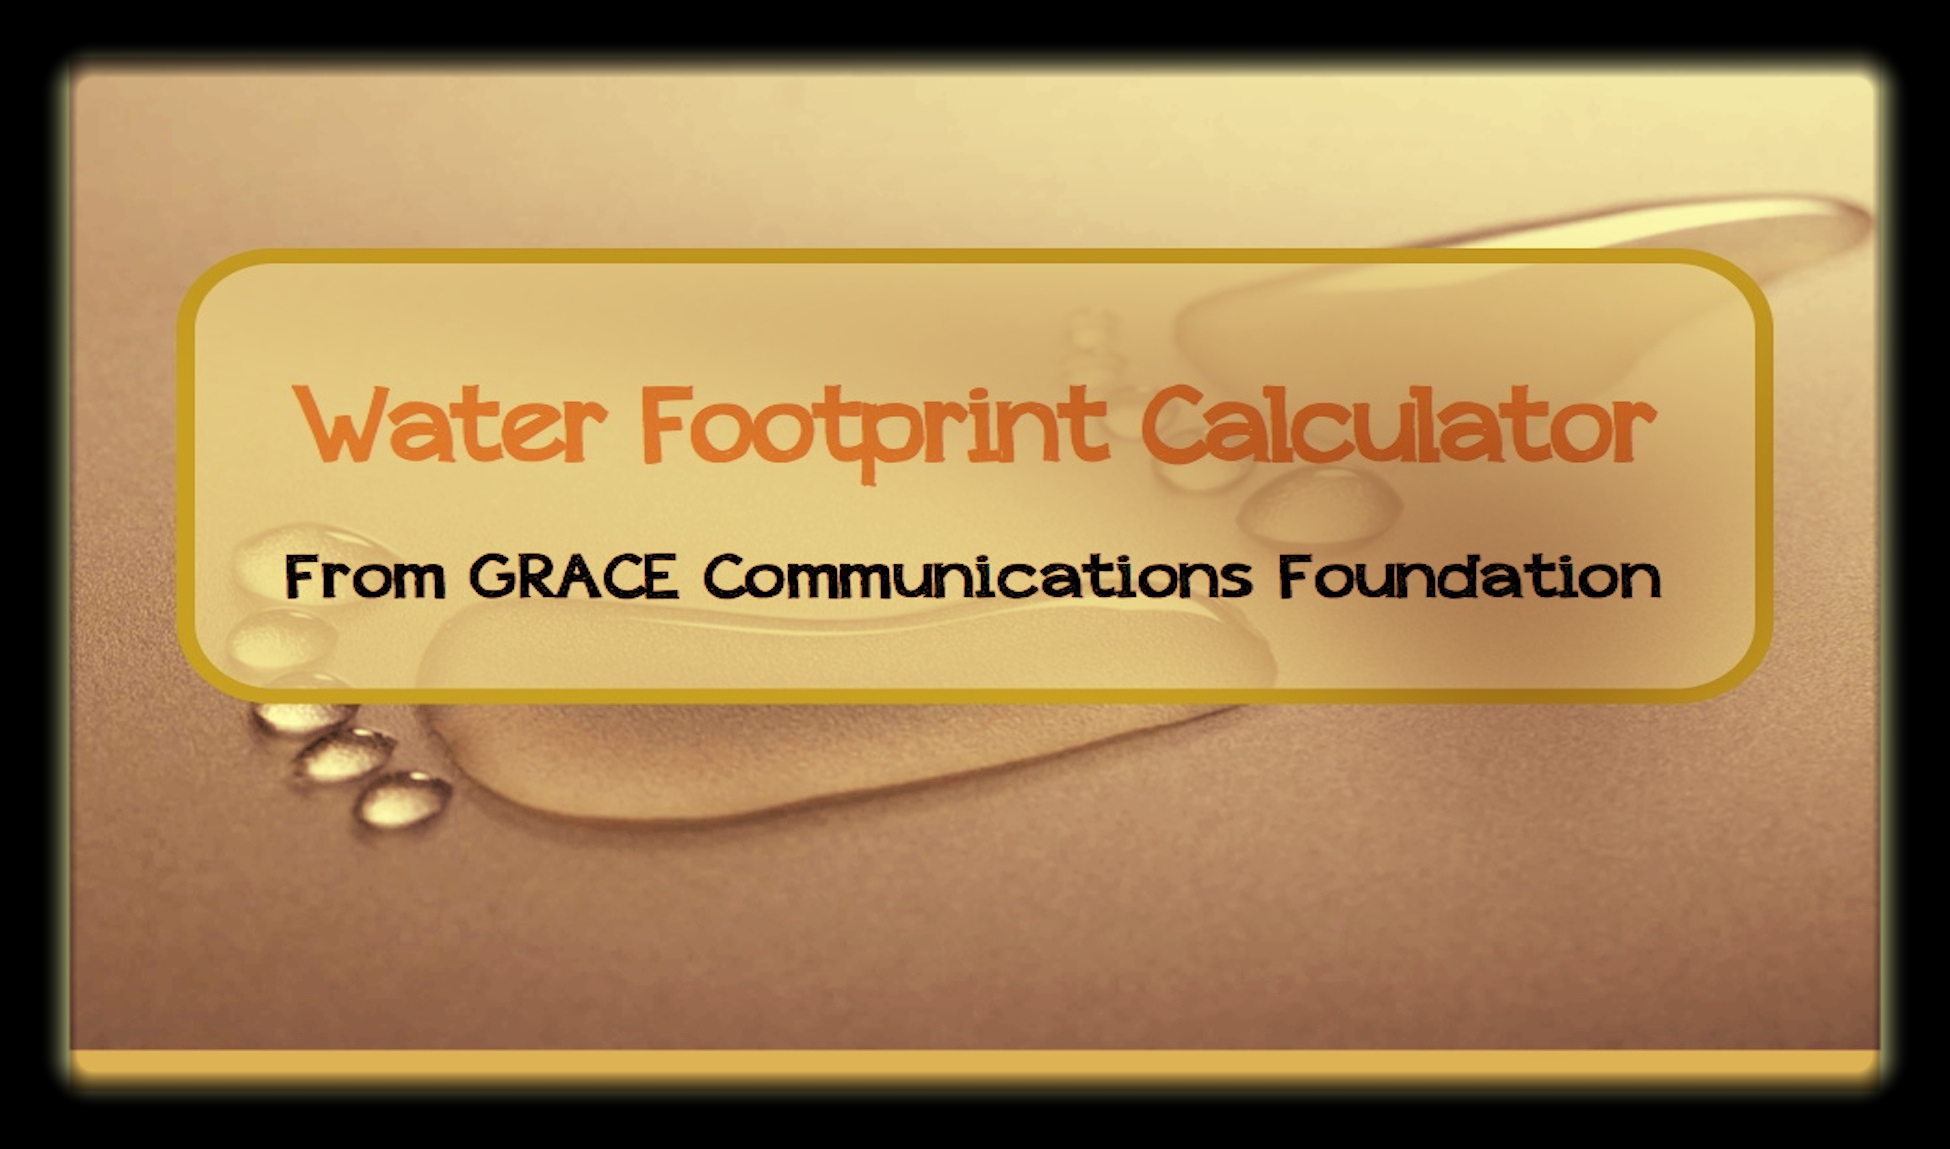 Calculate your water use and find ways to conserve thispreciousresource.